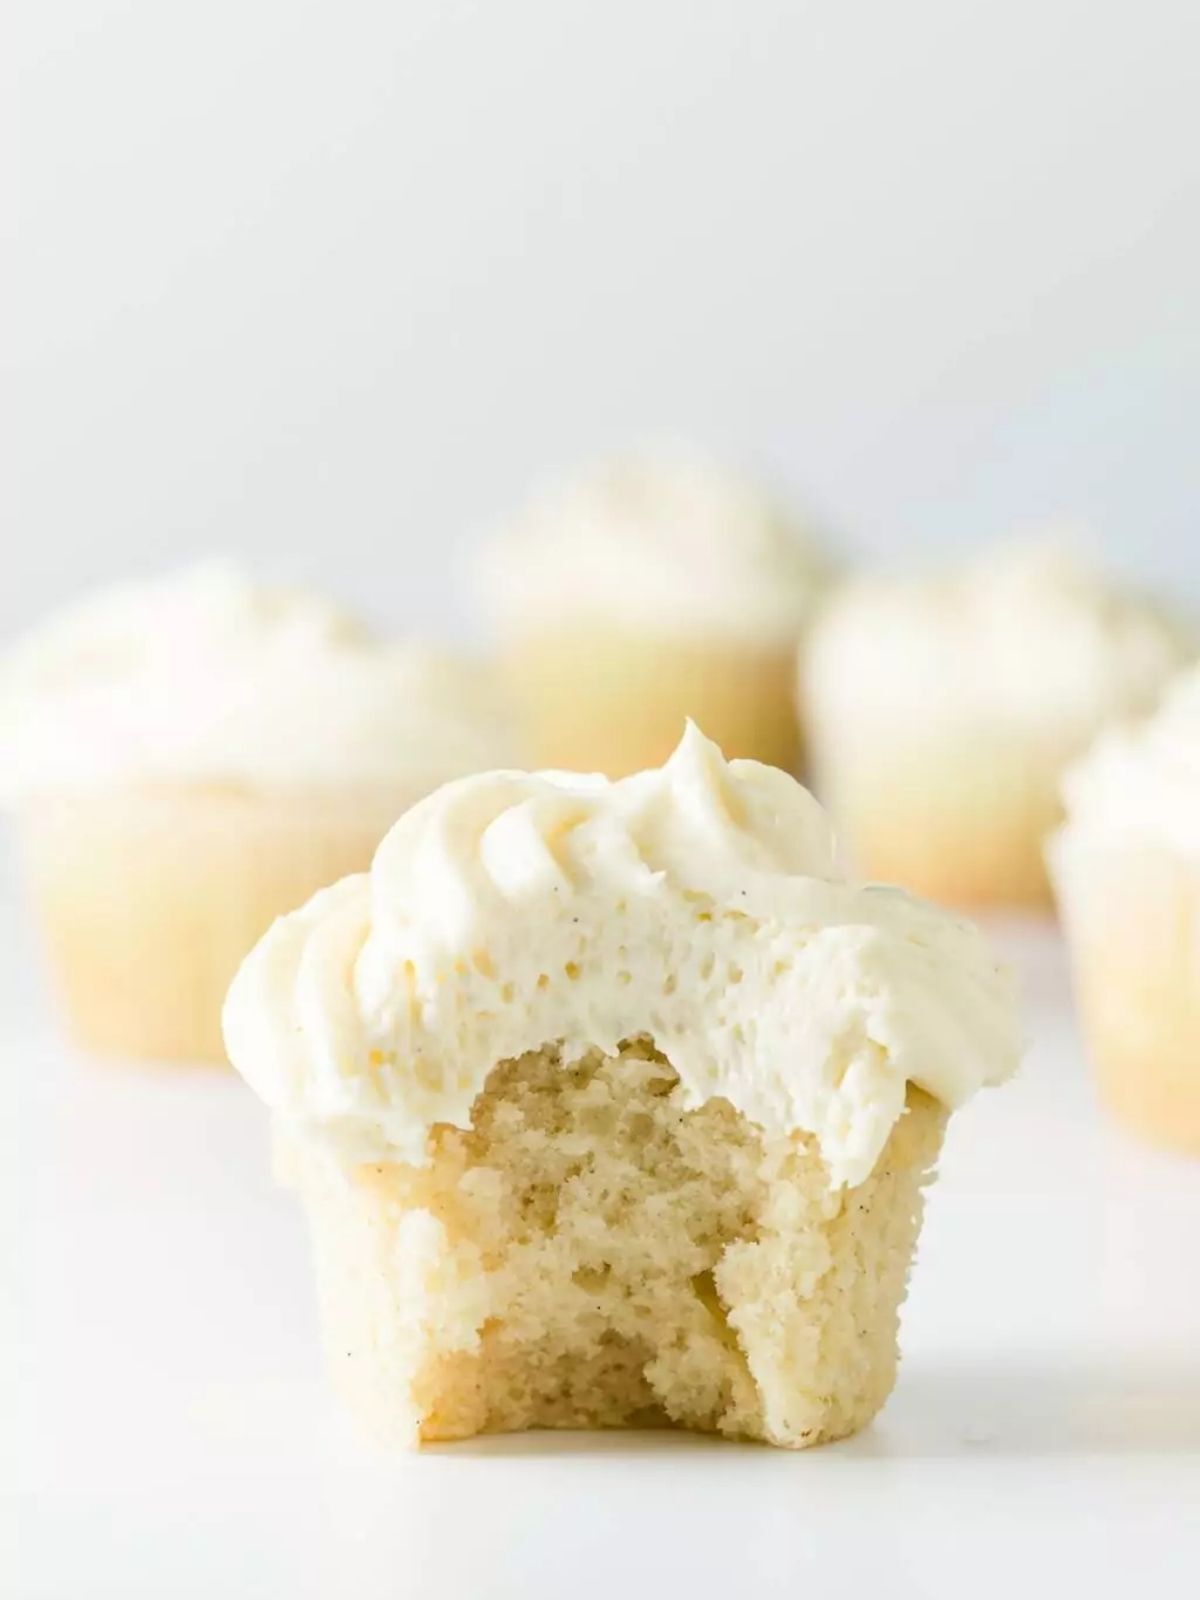 Vanilla cupcakes with a bite taken out.